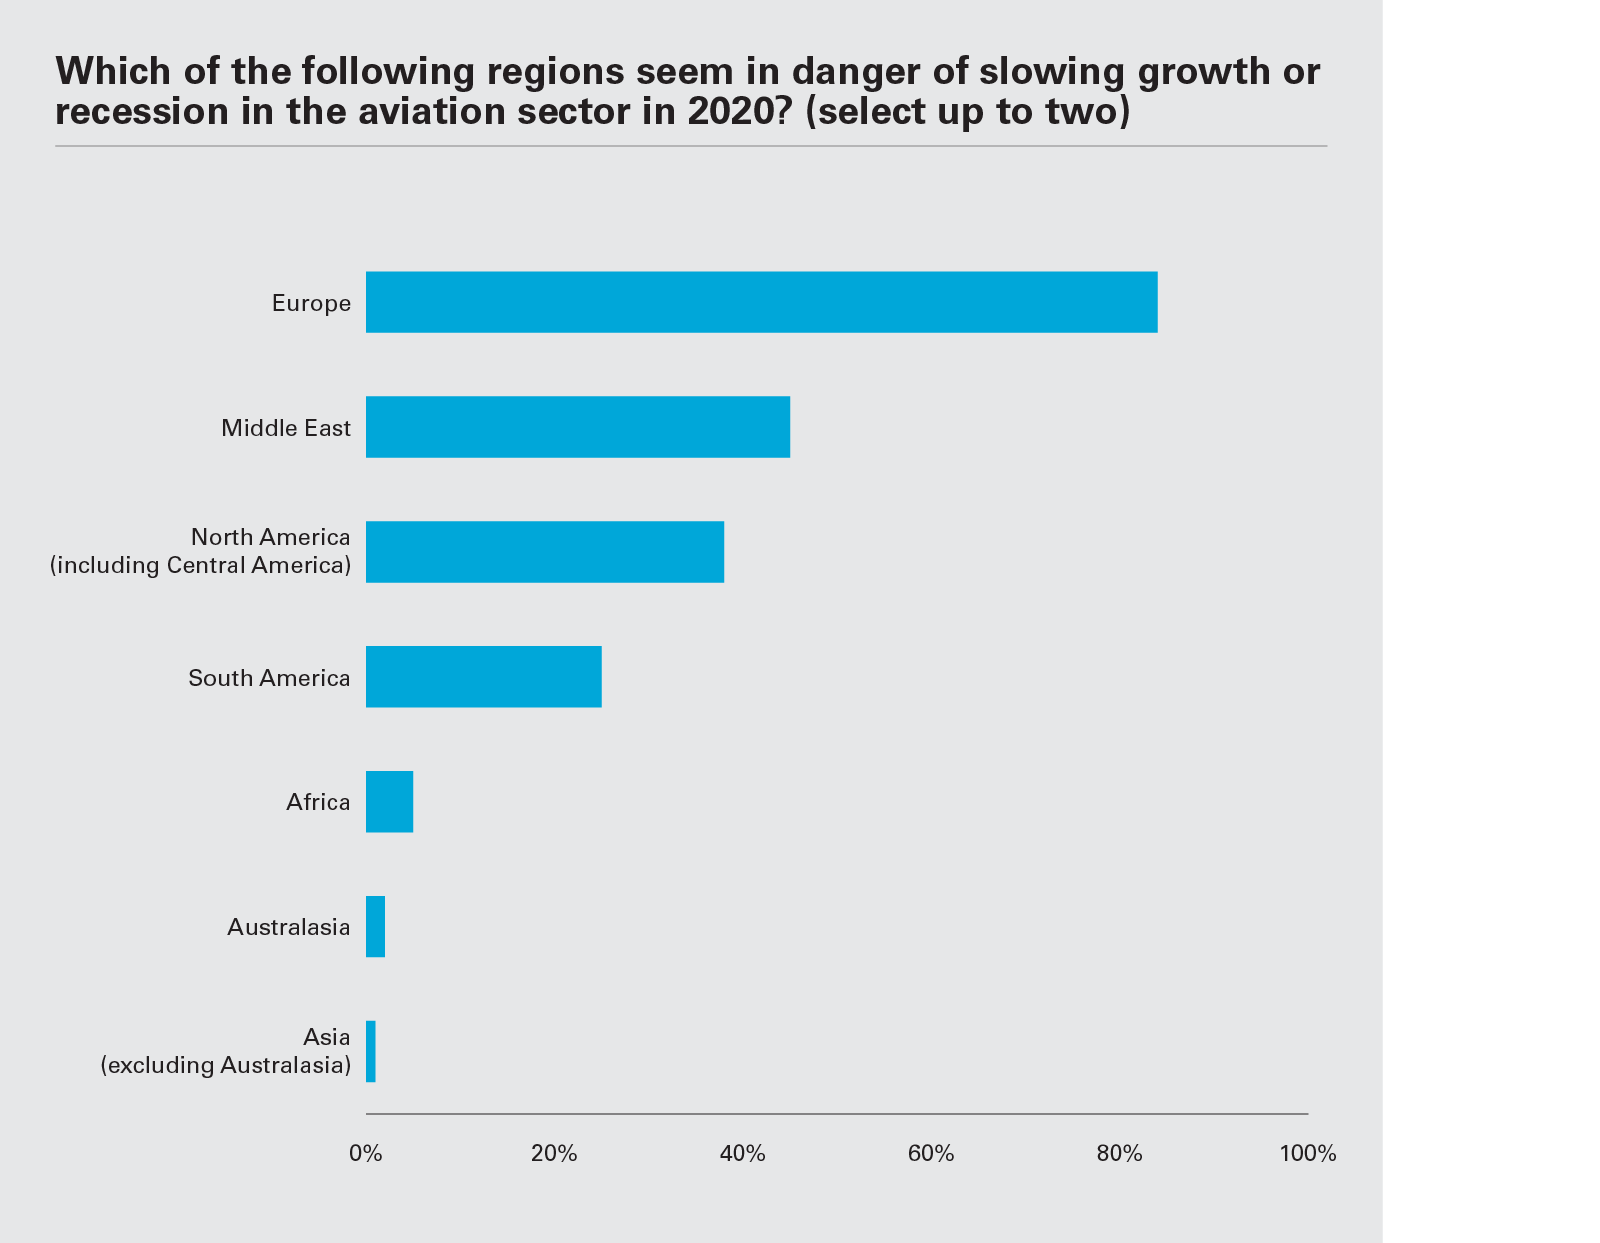 Which of the following regions seem in danger of slowing growth or recession in the aviation sector in 2020? (Graph PNG)